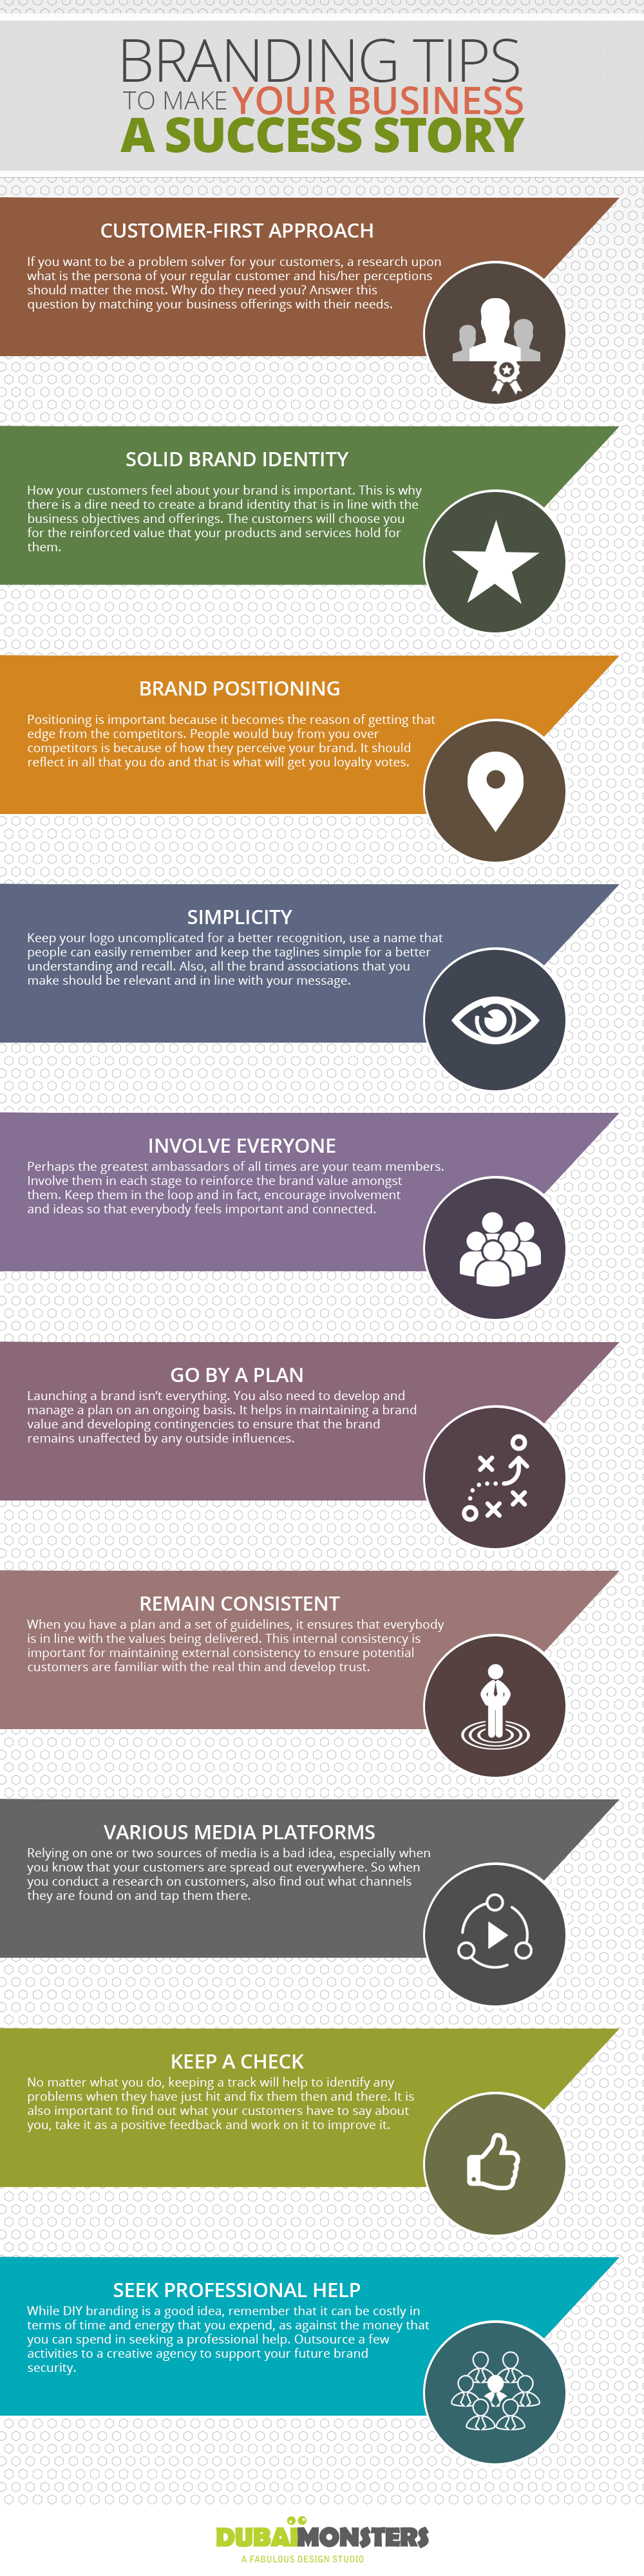 branding tips to make your business a success story